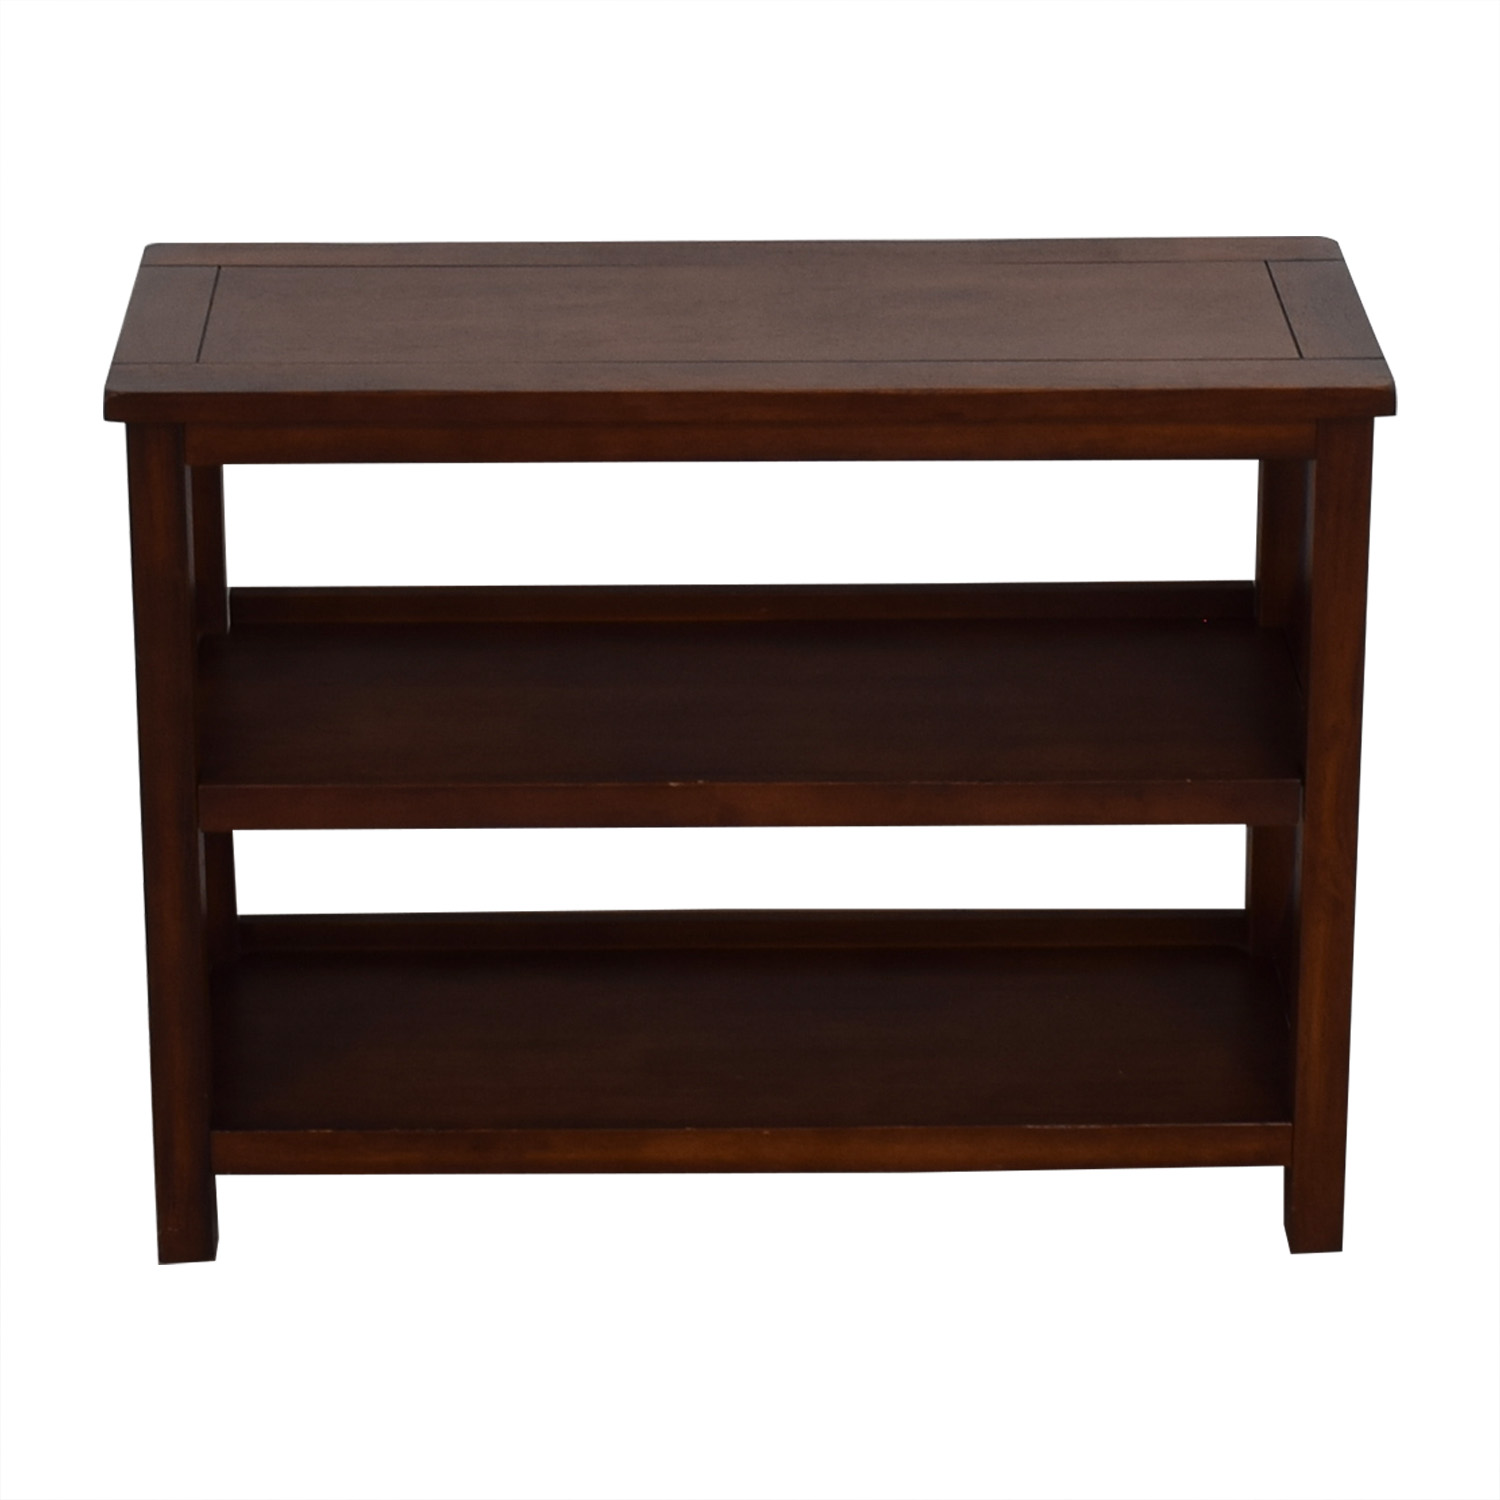 lowest price 6c620 a7dec 90% OFF - Wood Bookshelf Side Table / Tables